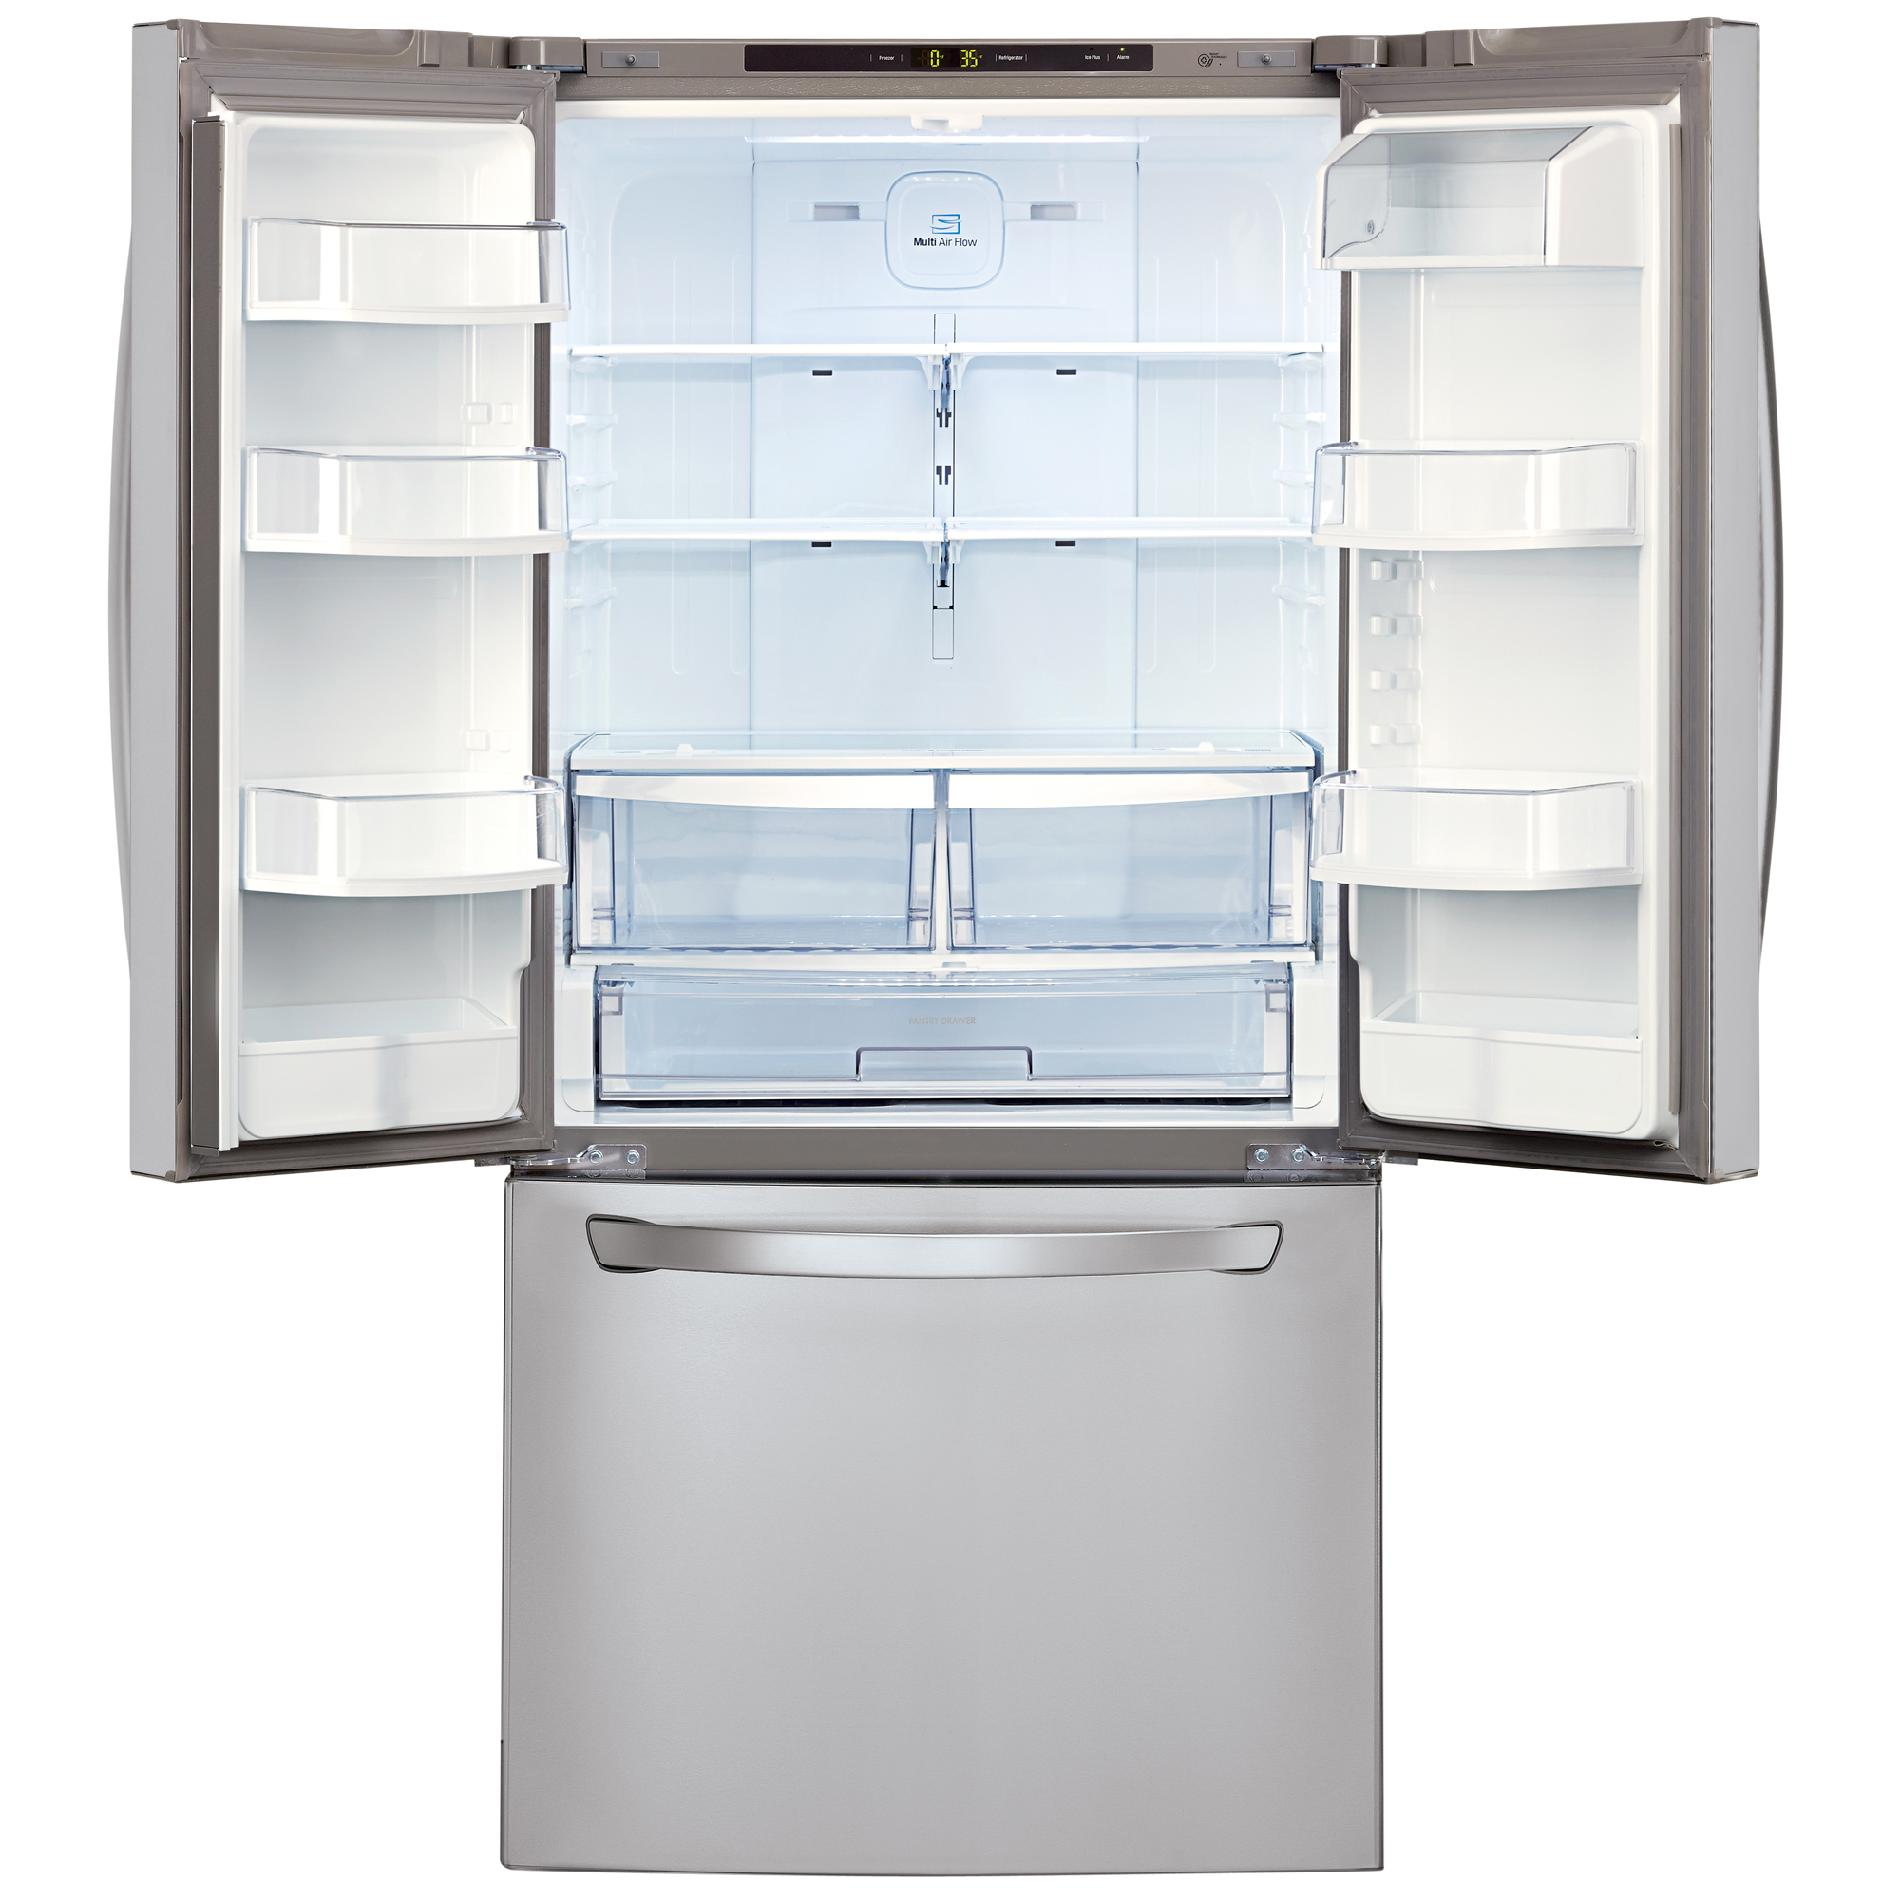 LG LFC24770ST 23.6 Cu. Ft. French Door Refrigerator w/ Smart Cooling